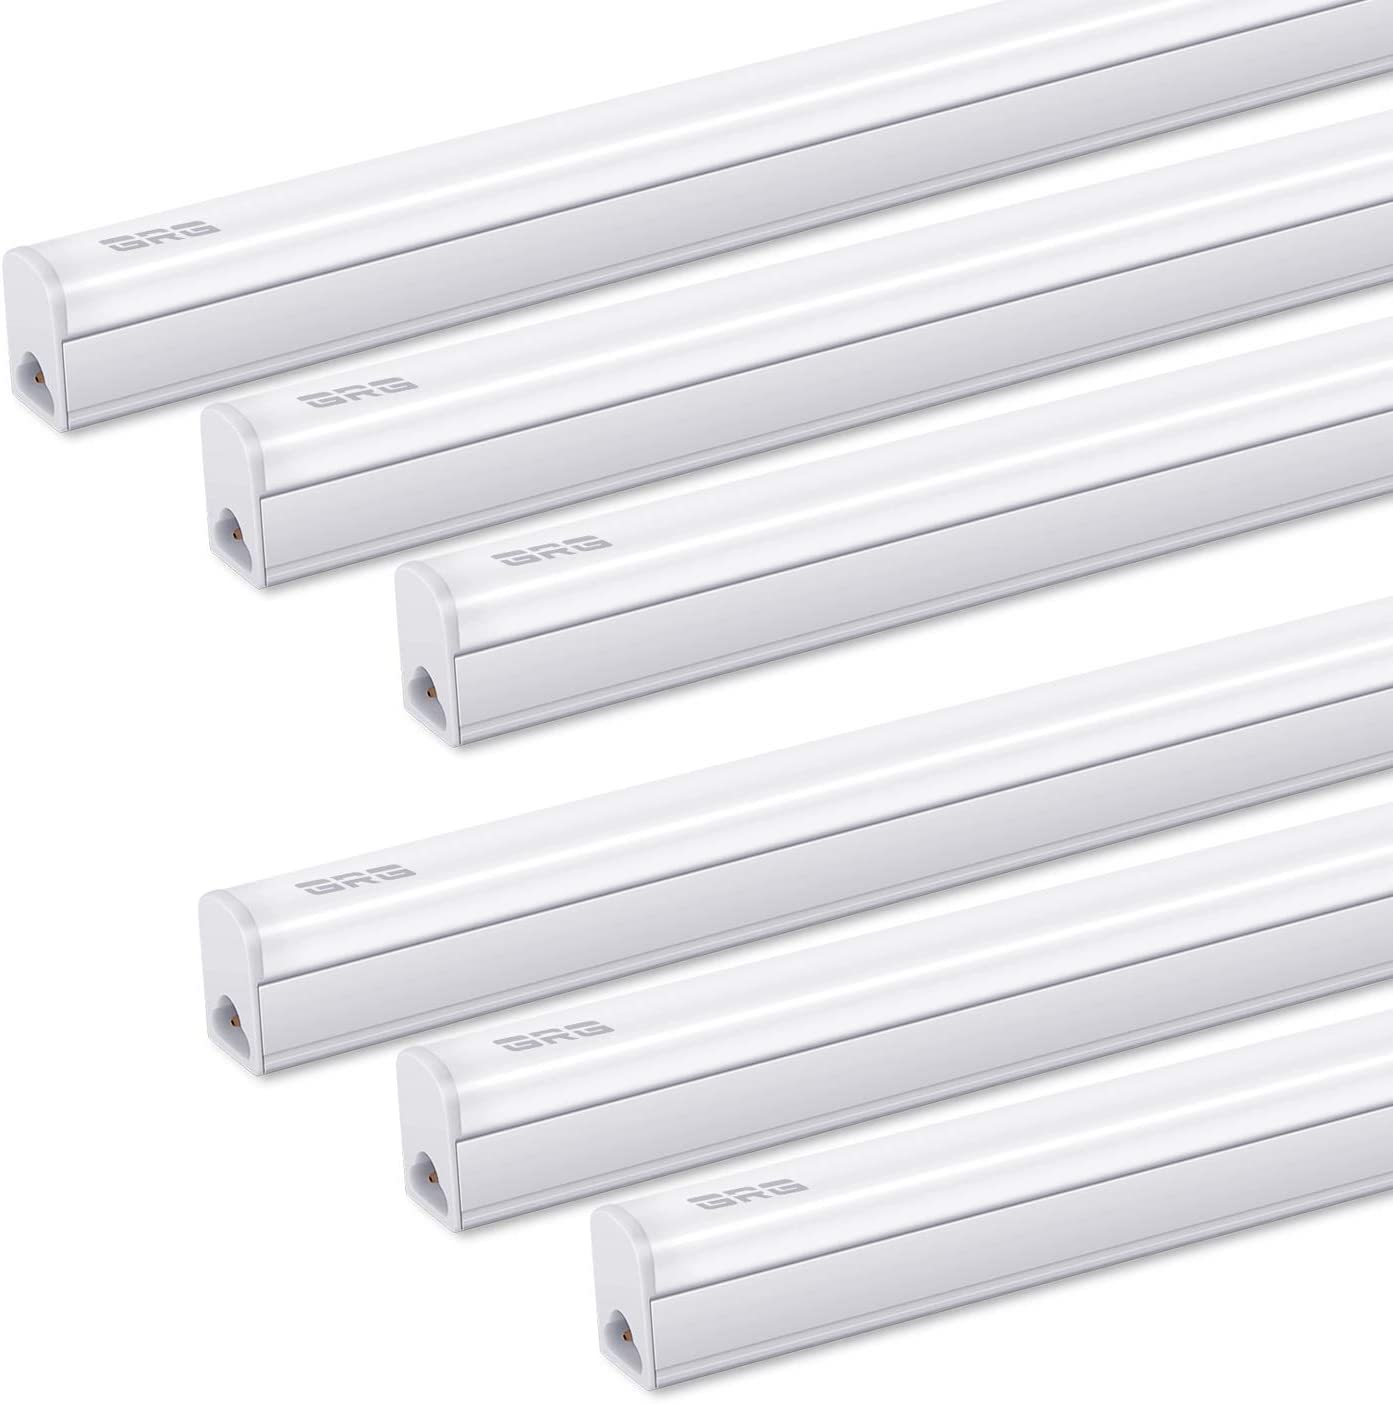 Pack of 6 GRG Linkable LED Utility Shop Light, Garage Lights, 4Ft 20W 2200lm 6500K, T5 Integrated Single Fixture, LED Ceiling Under Cabinet Light, T5 T8 Fluorescent Tube Light Fixture Replacement